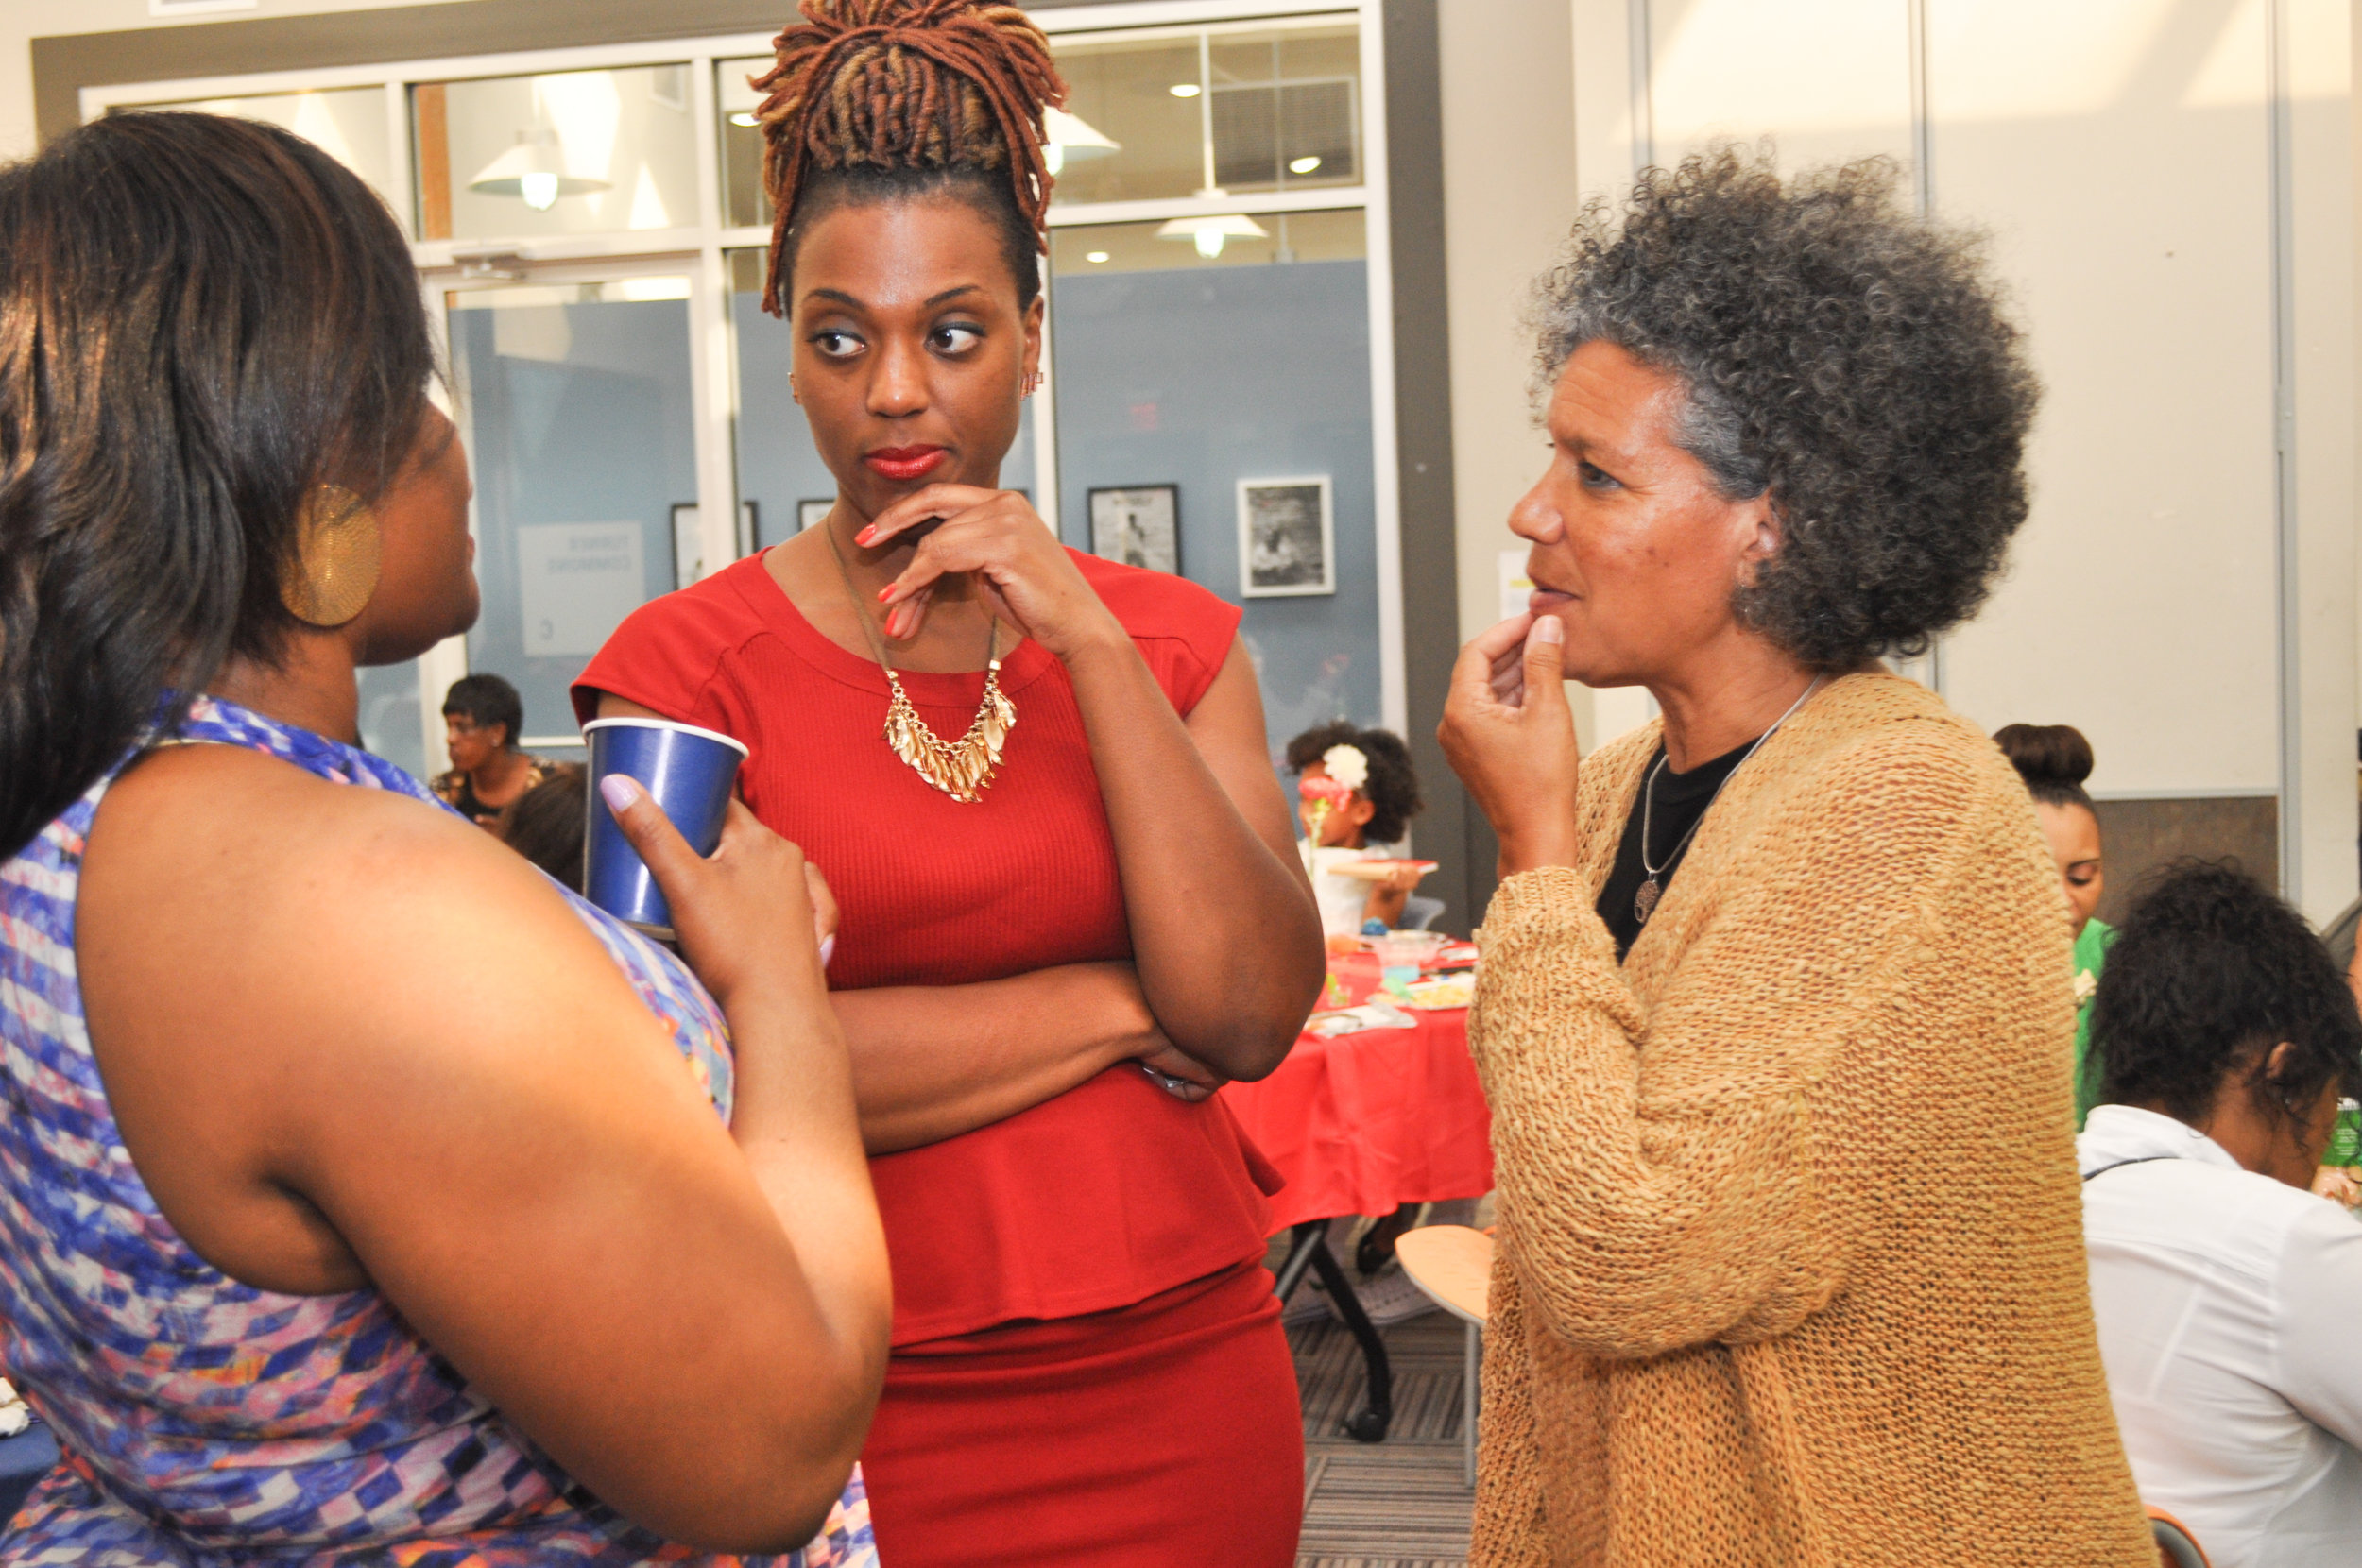 Work alongside other women of color centering our experiences & maximizing our impact . -